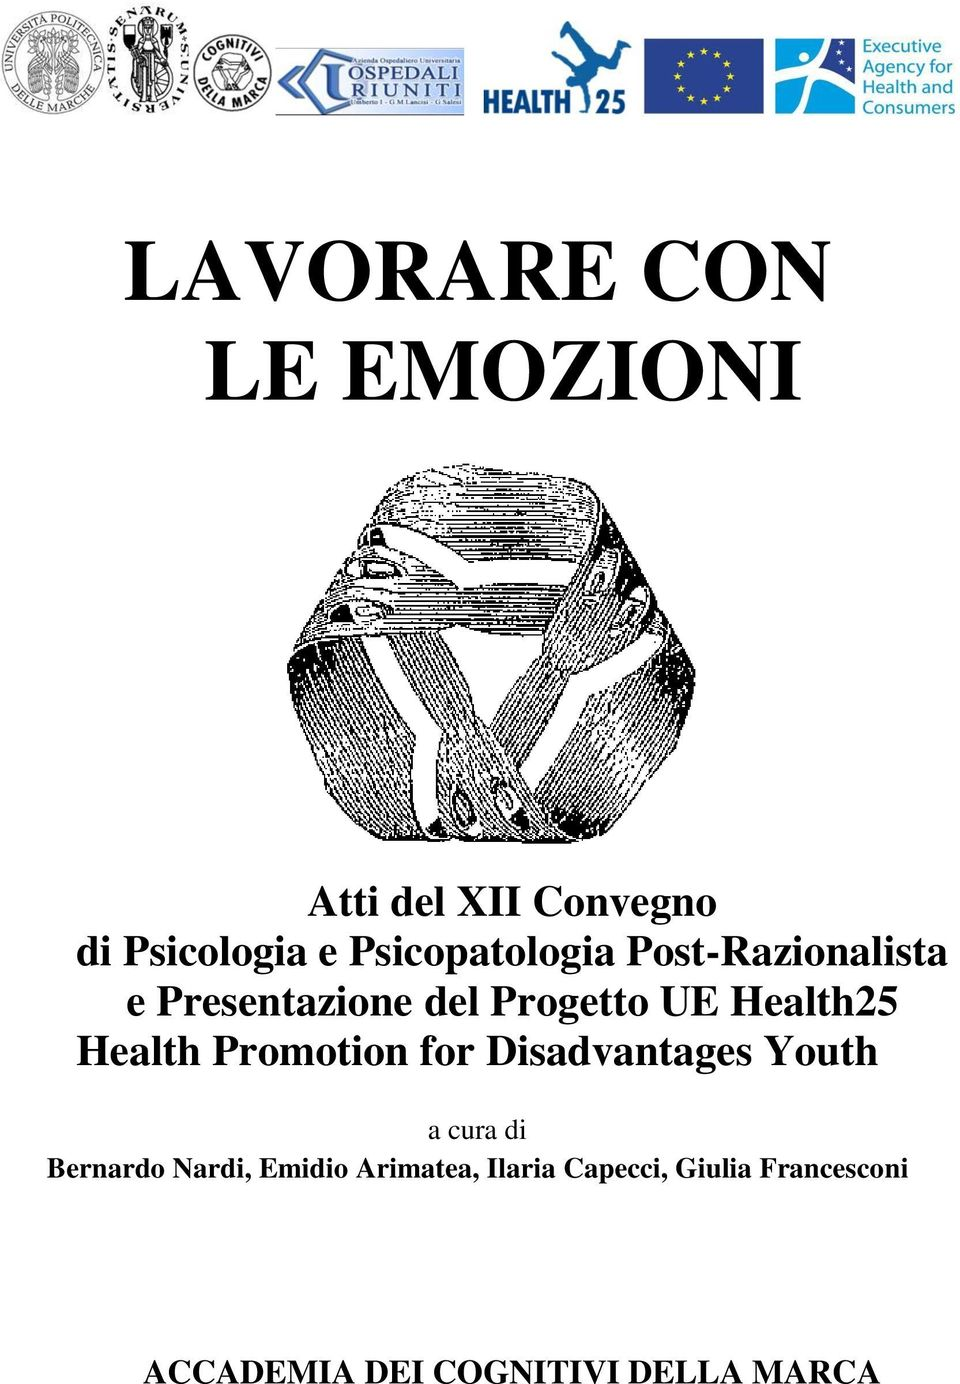 Health25 Health Promotion for Disadvantages Youth a cura di Bernardo